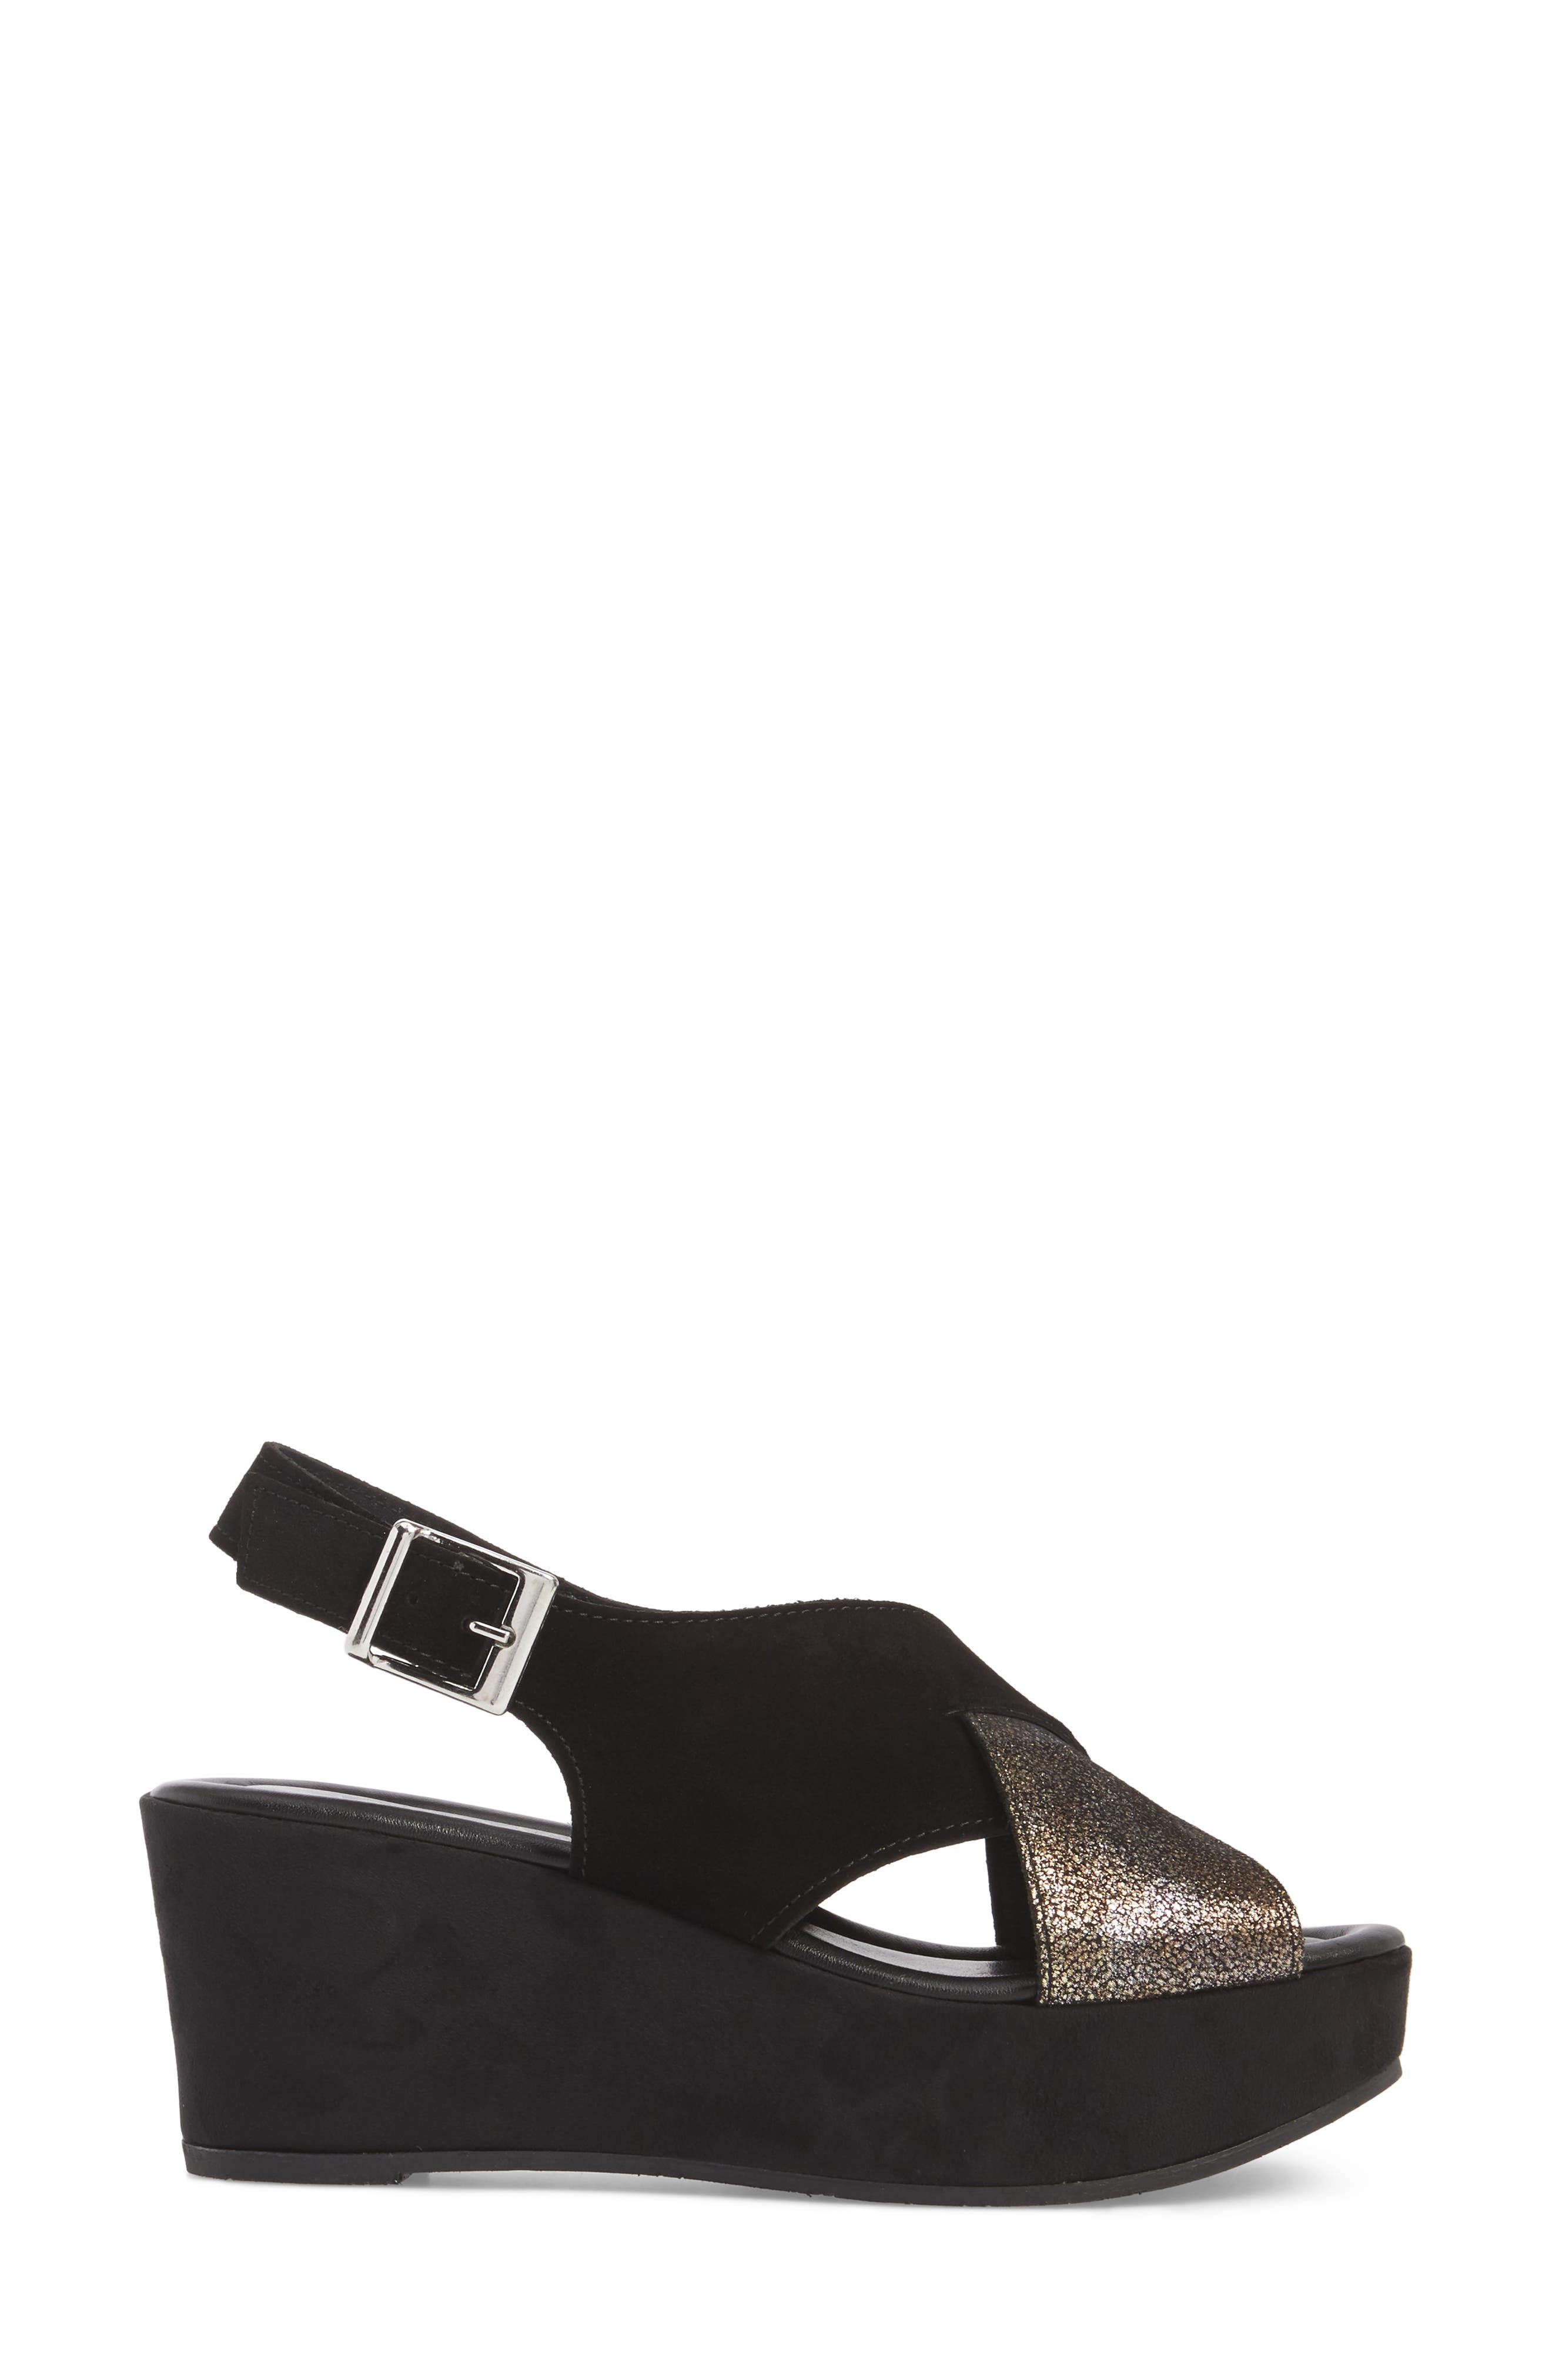 Cleary Wedge Sandal,                             Alternate thumbnail 3, color,                             BLACK/ PEWTER SUEDE